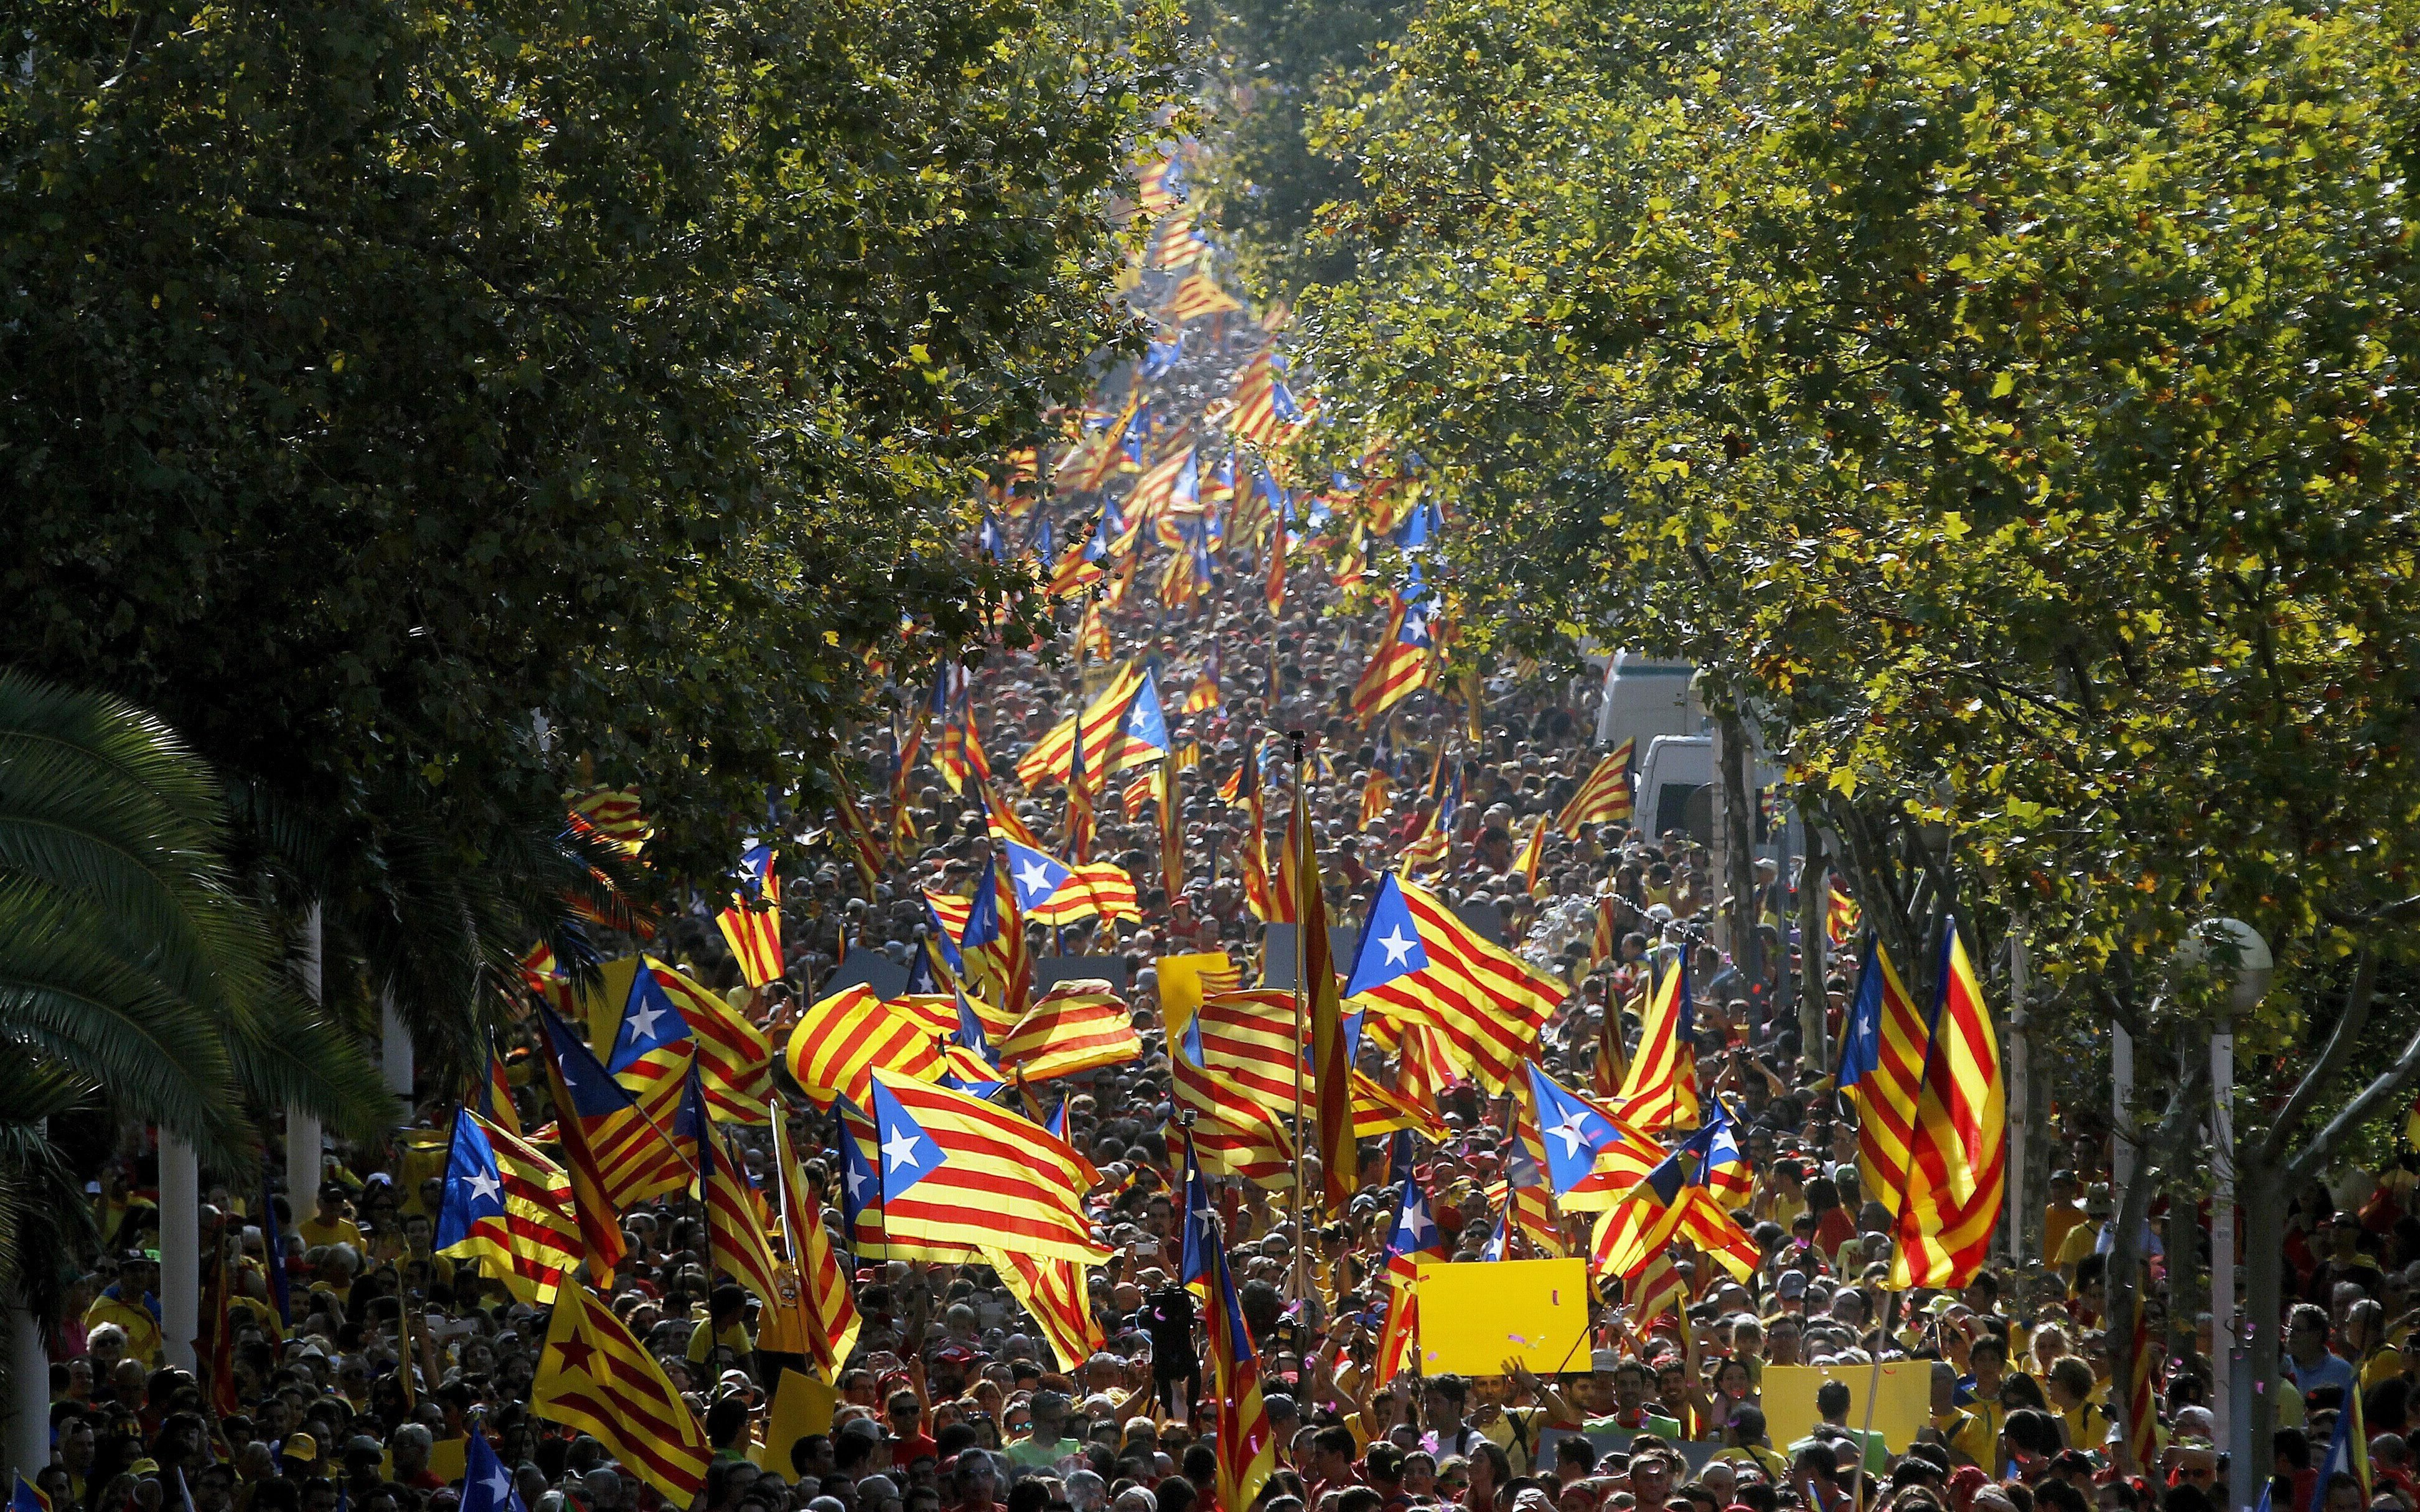 Thousands of people attend a rally to support the referendum on Catalonia's independence in Barcelona, Catalonia, Spain on Sept. 11, 2014.